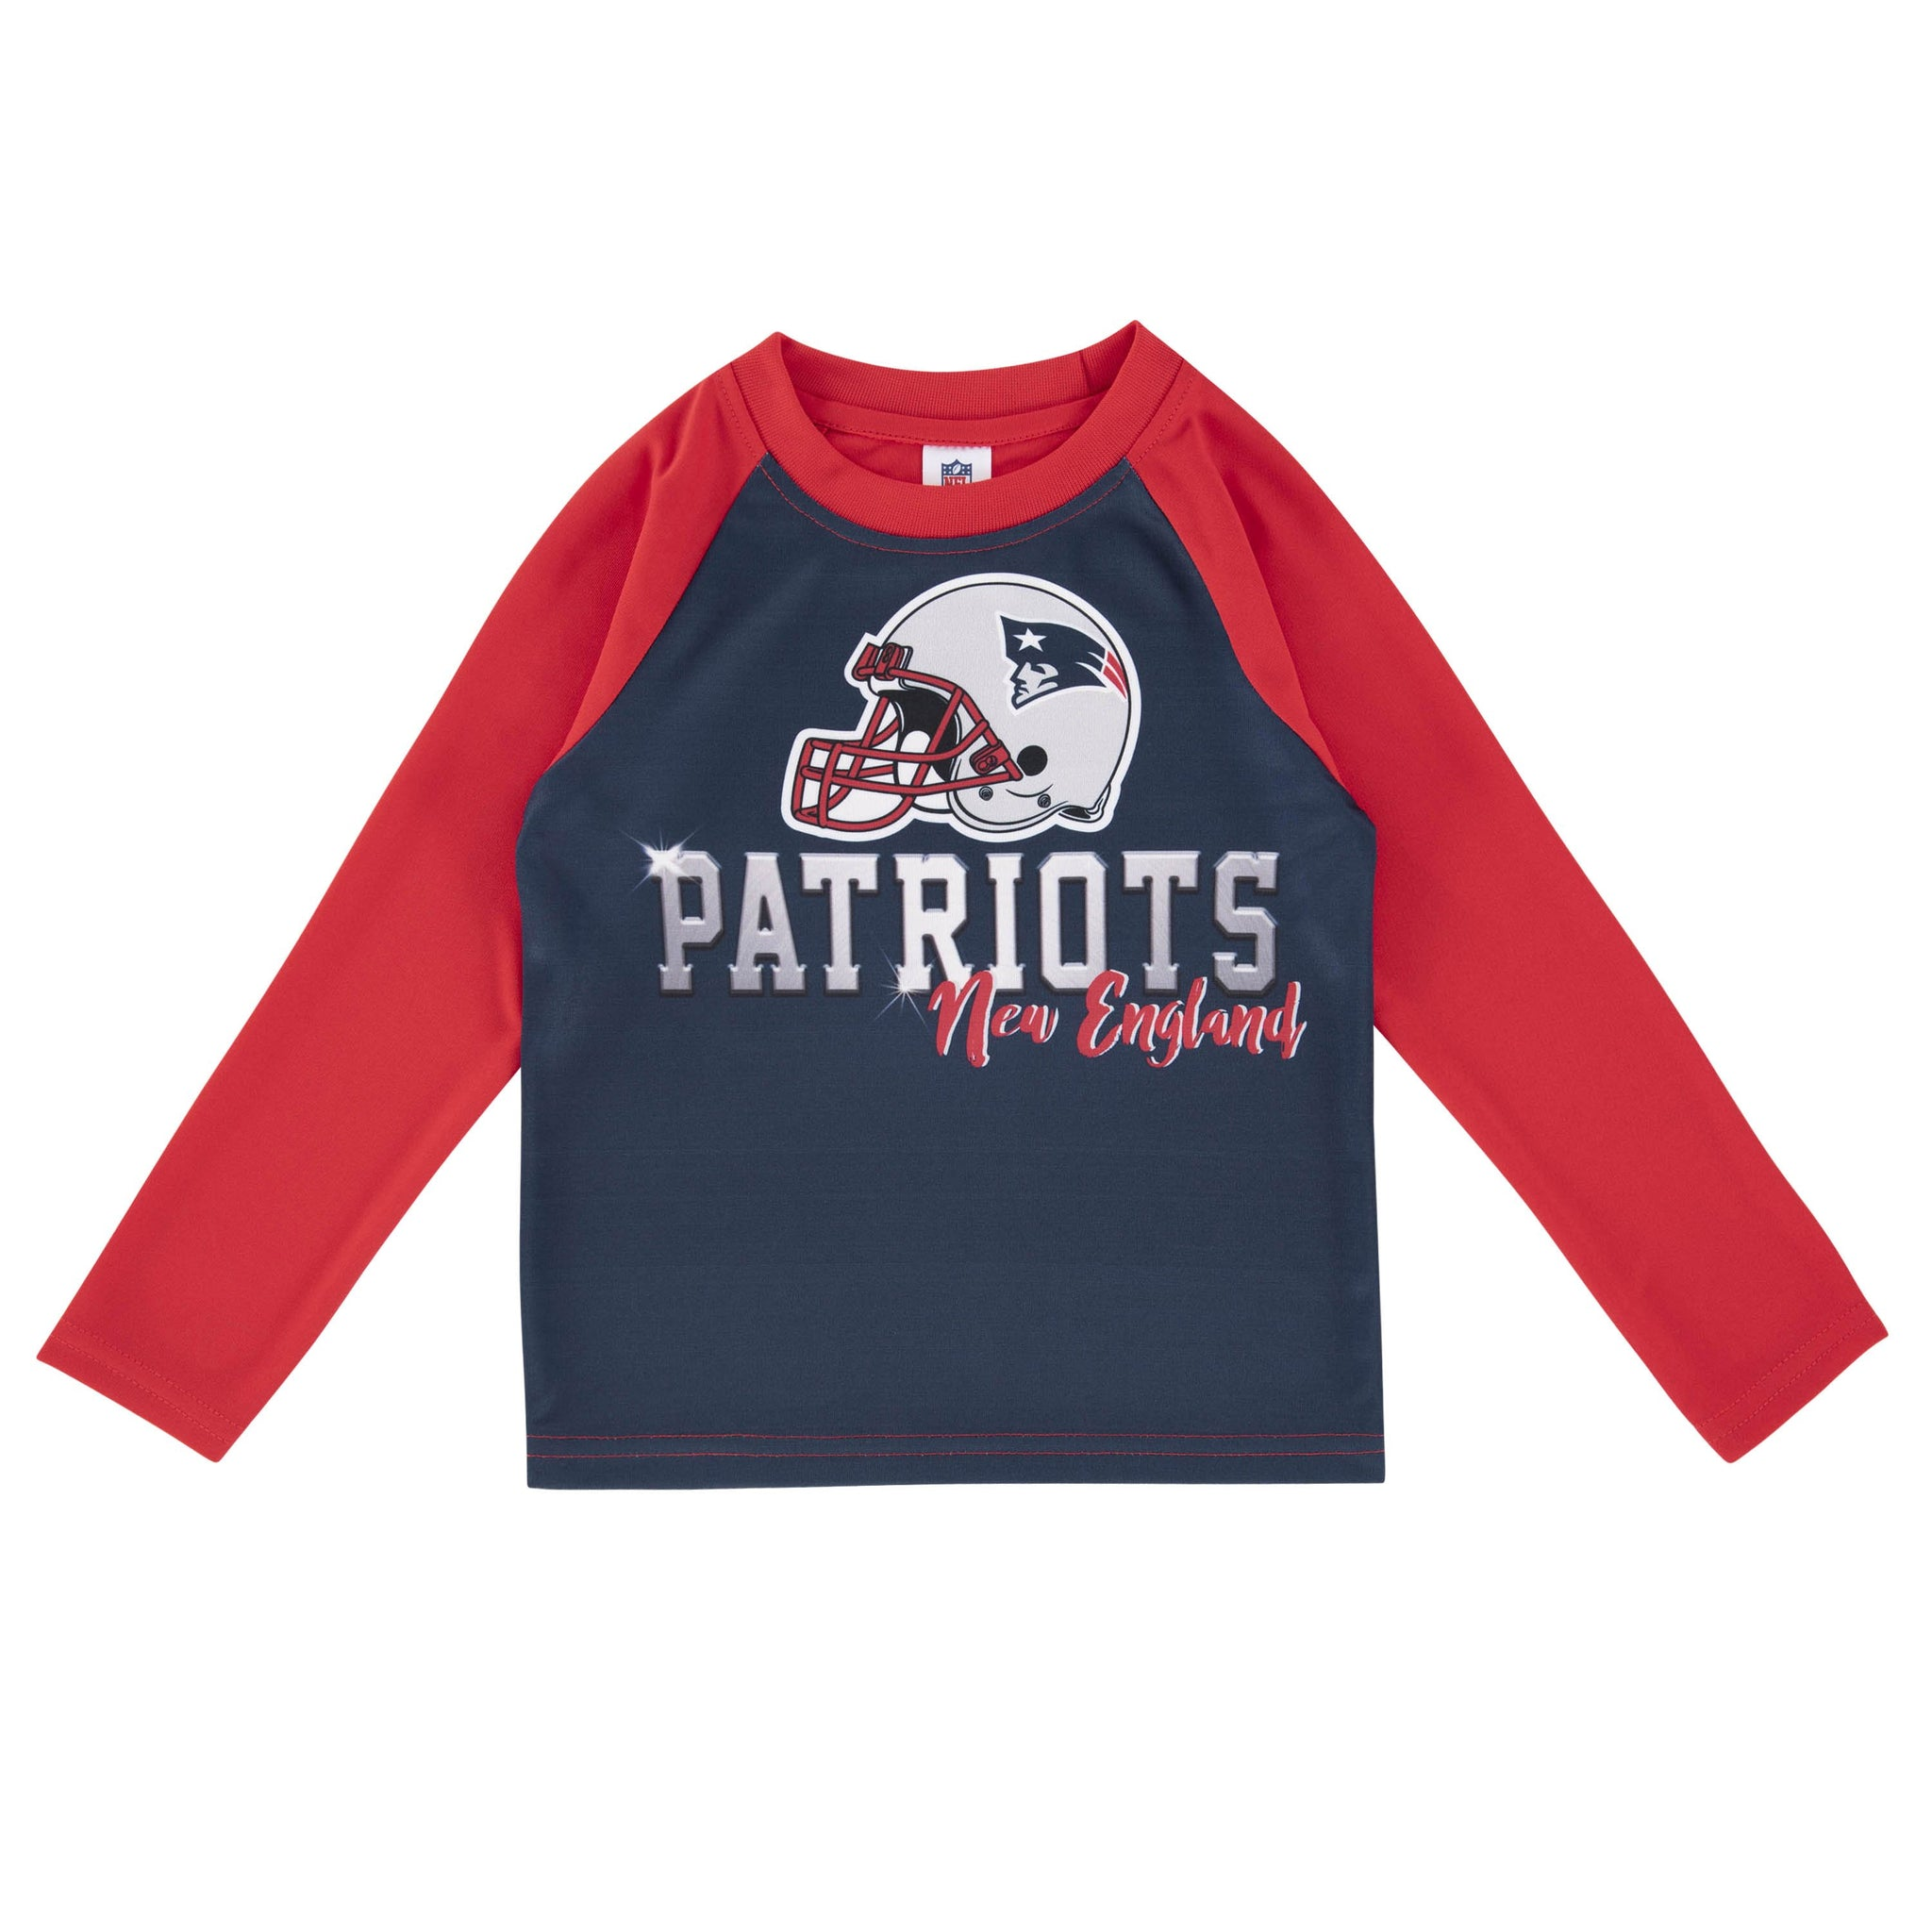 New England Patriots Toddler Boys' Long Sleeve Tee-Gerber Childrenswear